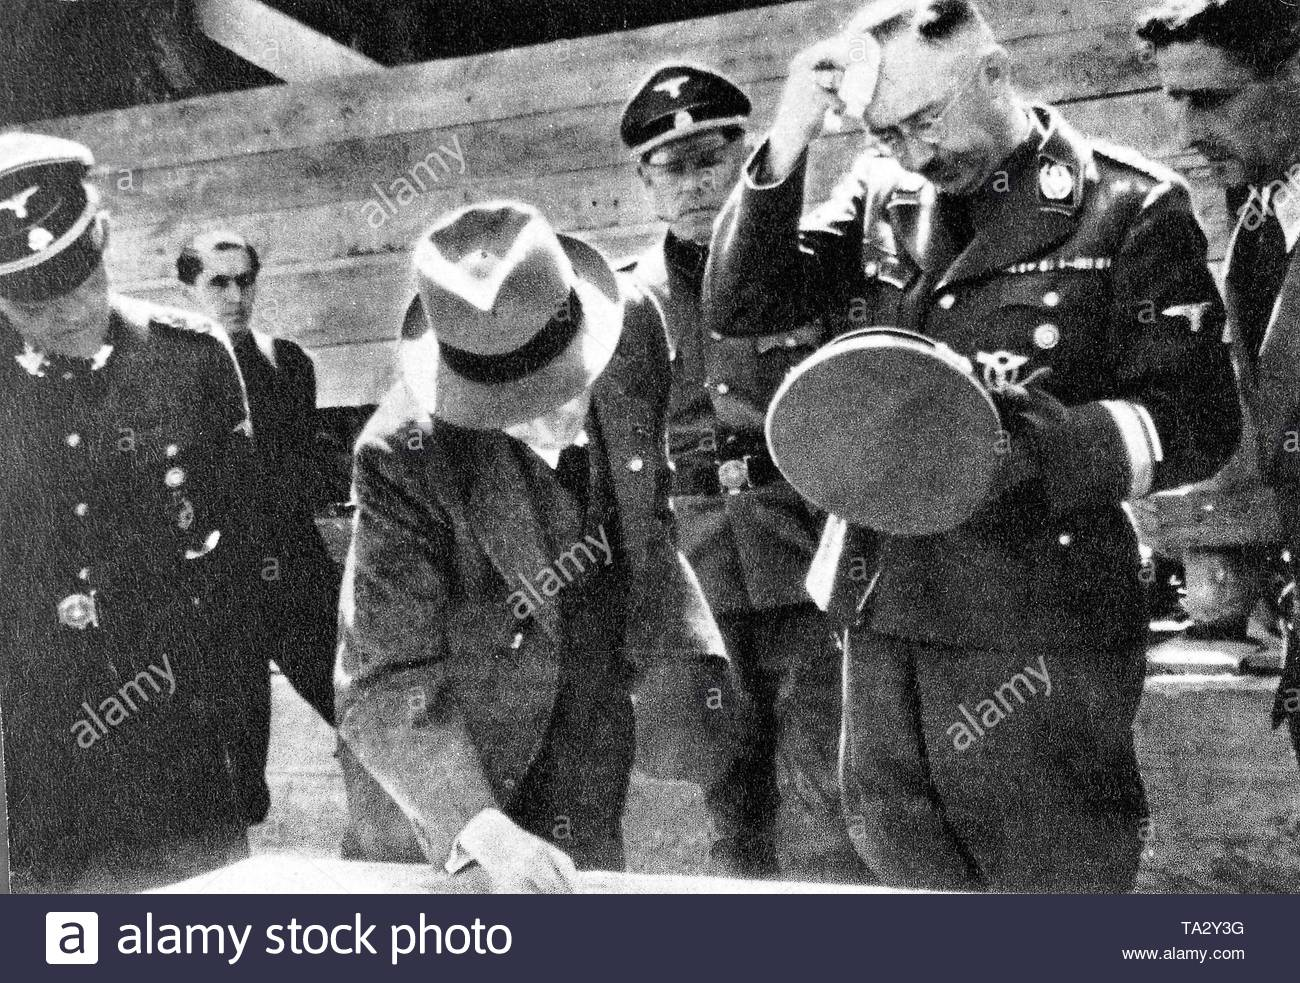 Reichsfuehrer-SS Heinrich Himmler and the chief engineer of IG Farben Max Faust (with hat) in the concentration camp Auschwitz. - Stock Image